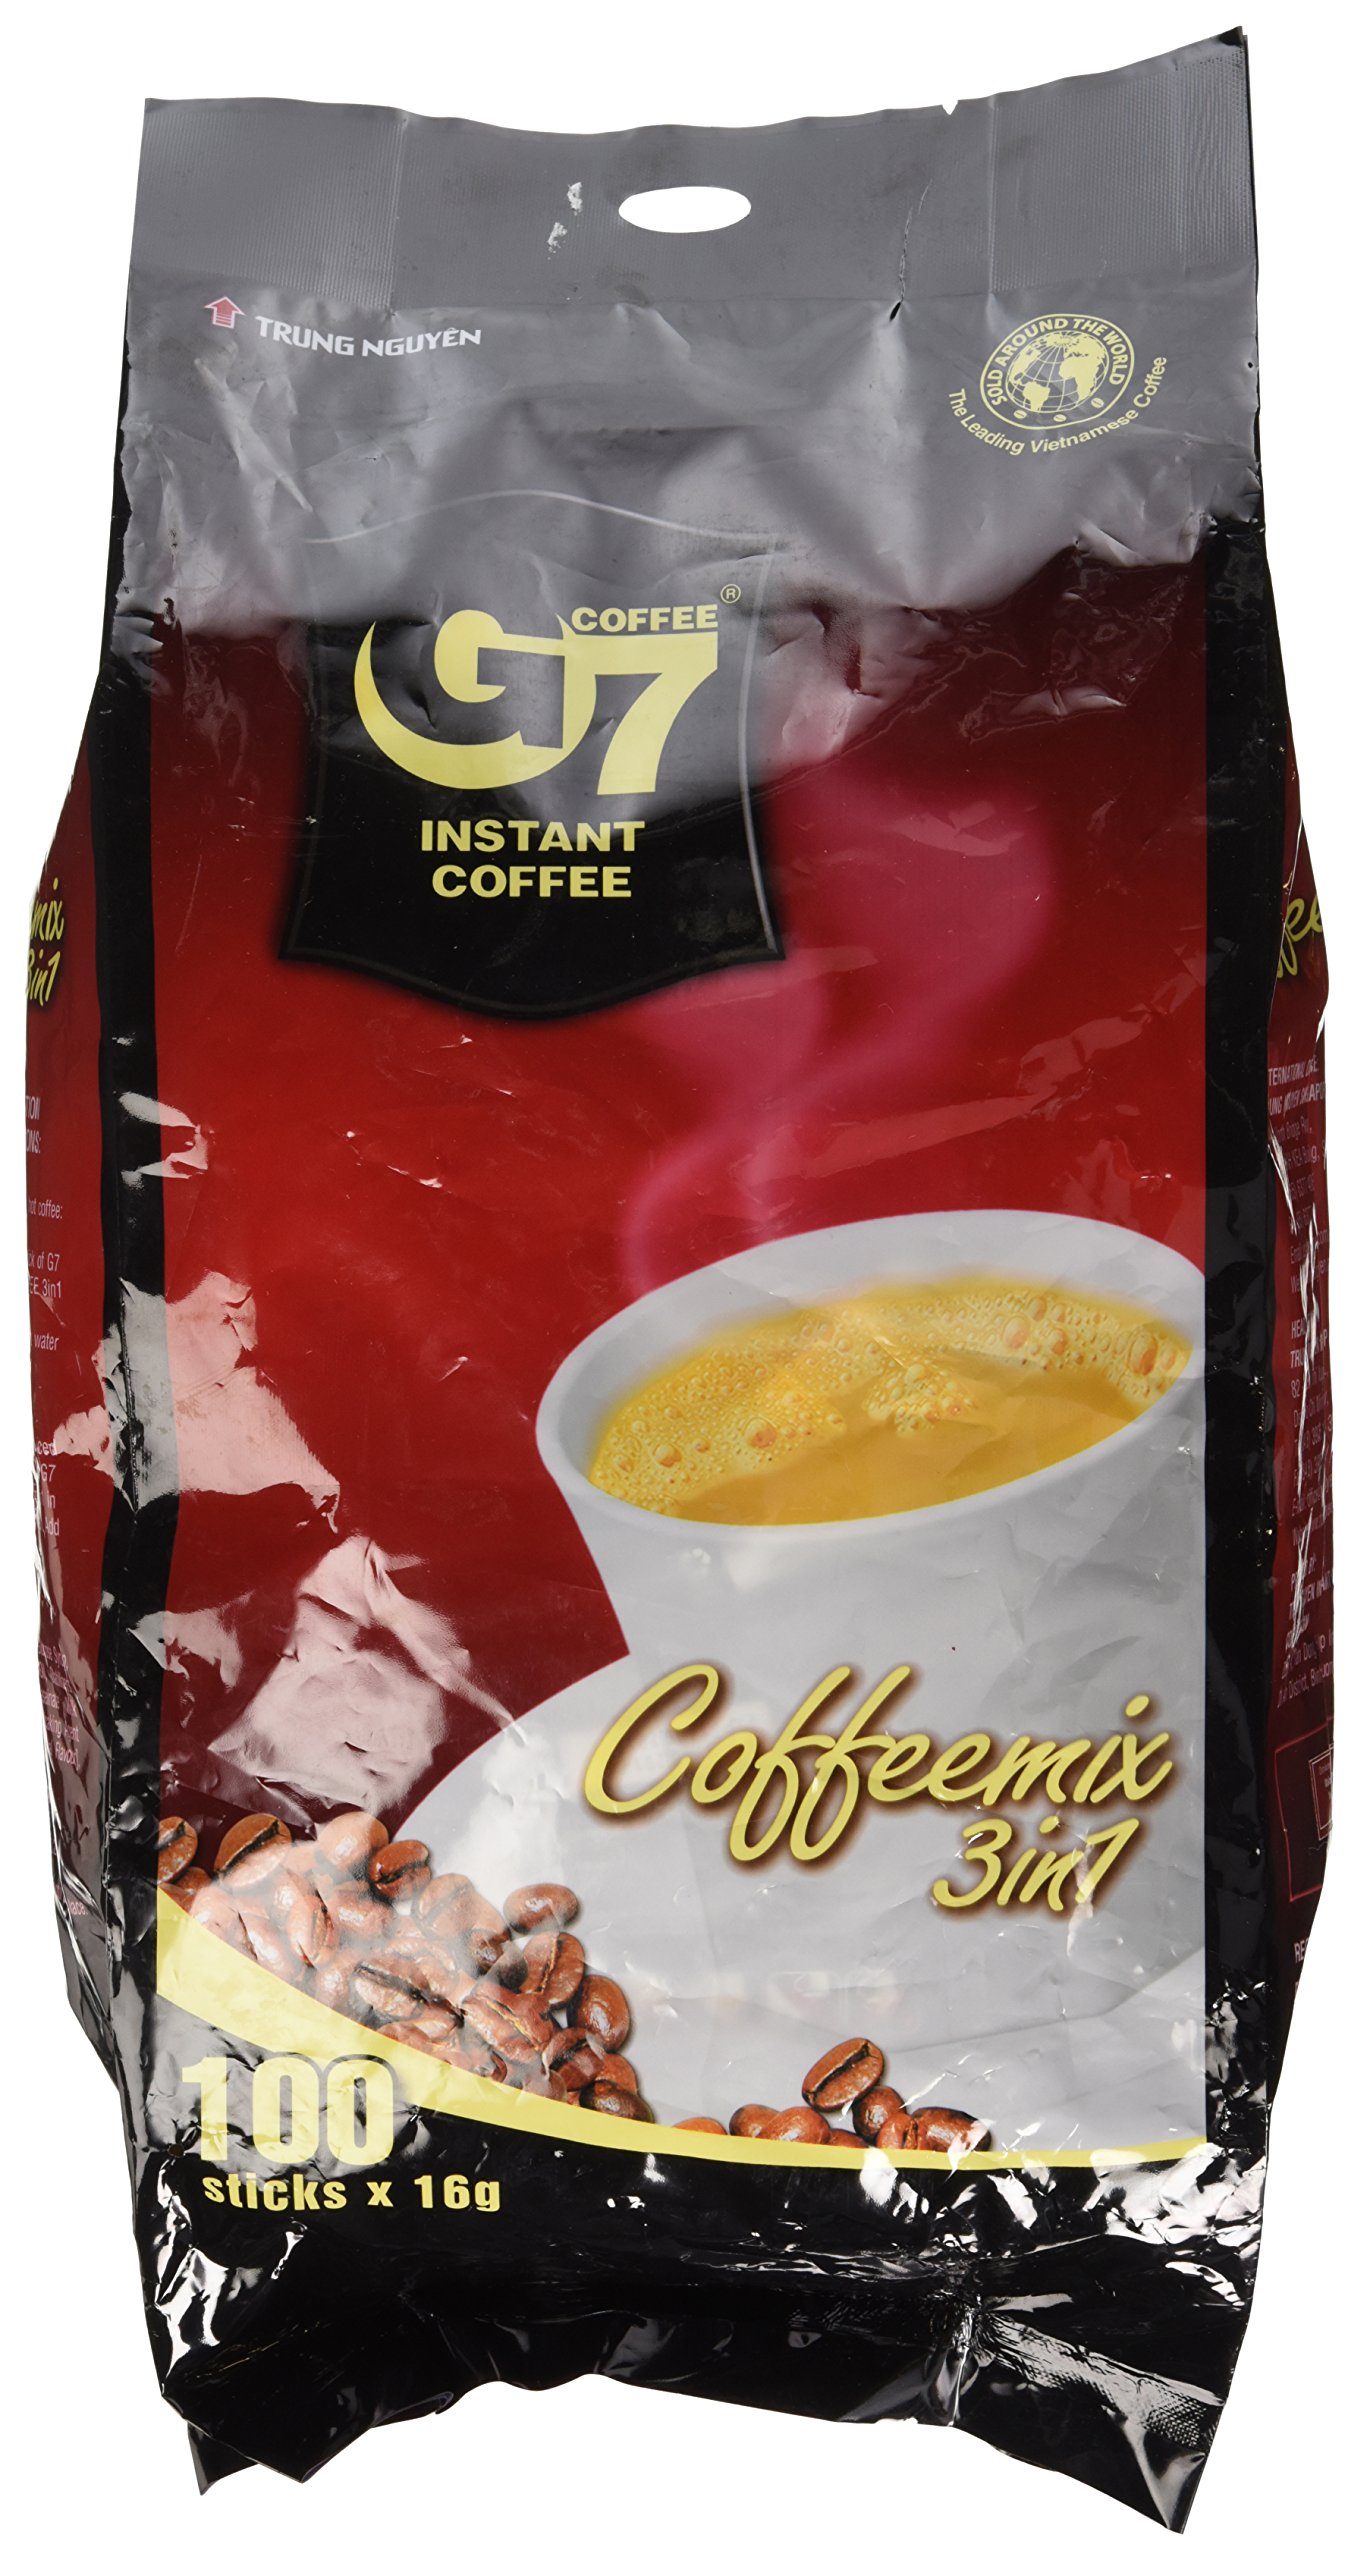 G7 3-in-1 Instant Premium Vietnamese Coffee, 100 Servings/Sachets by TRUNG NGUYEN